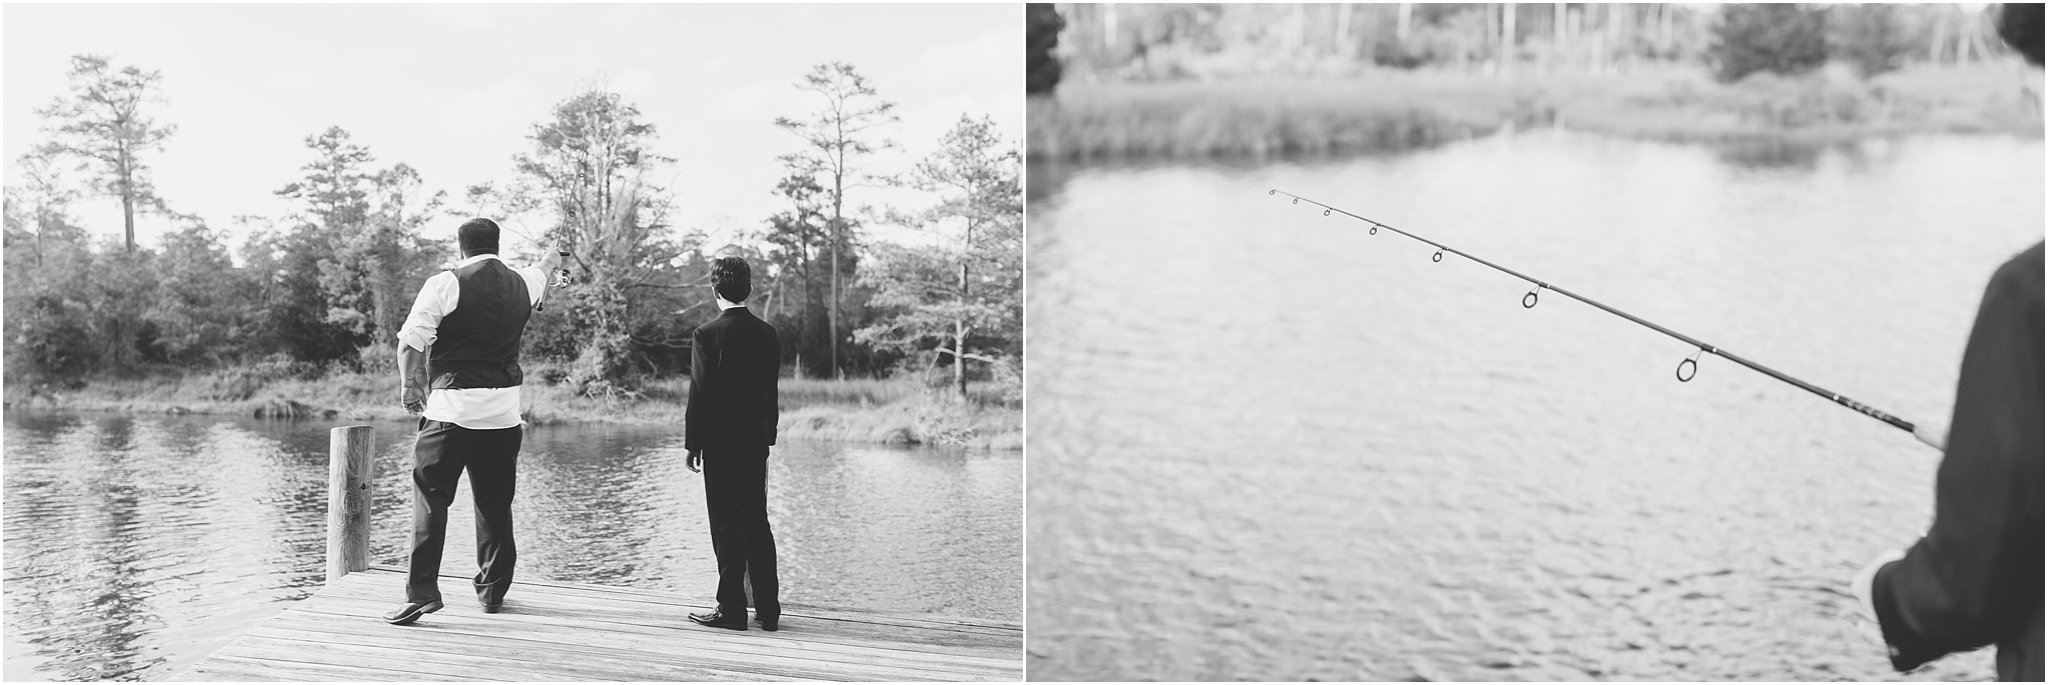 jessica_ryan_photography_virginia_virginiabeachwedding_bayislandvirginiabeach_backyardwedding_waterfrontwedding_intimatewedding_vintagewedding_1602